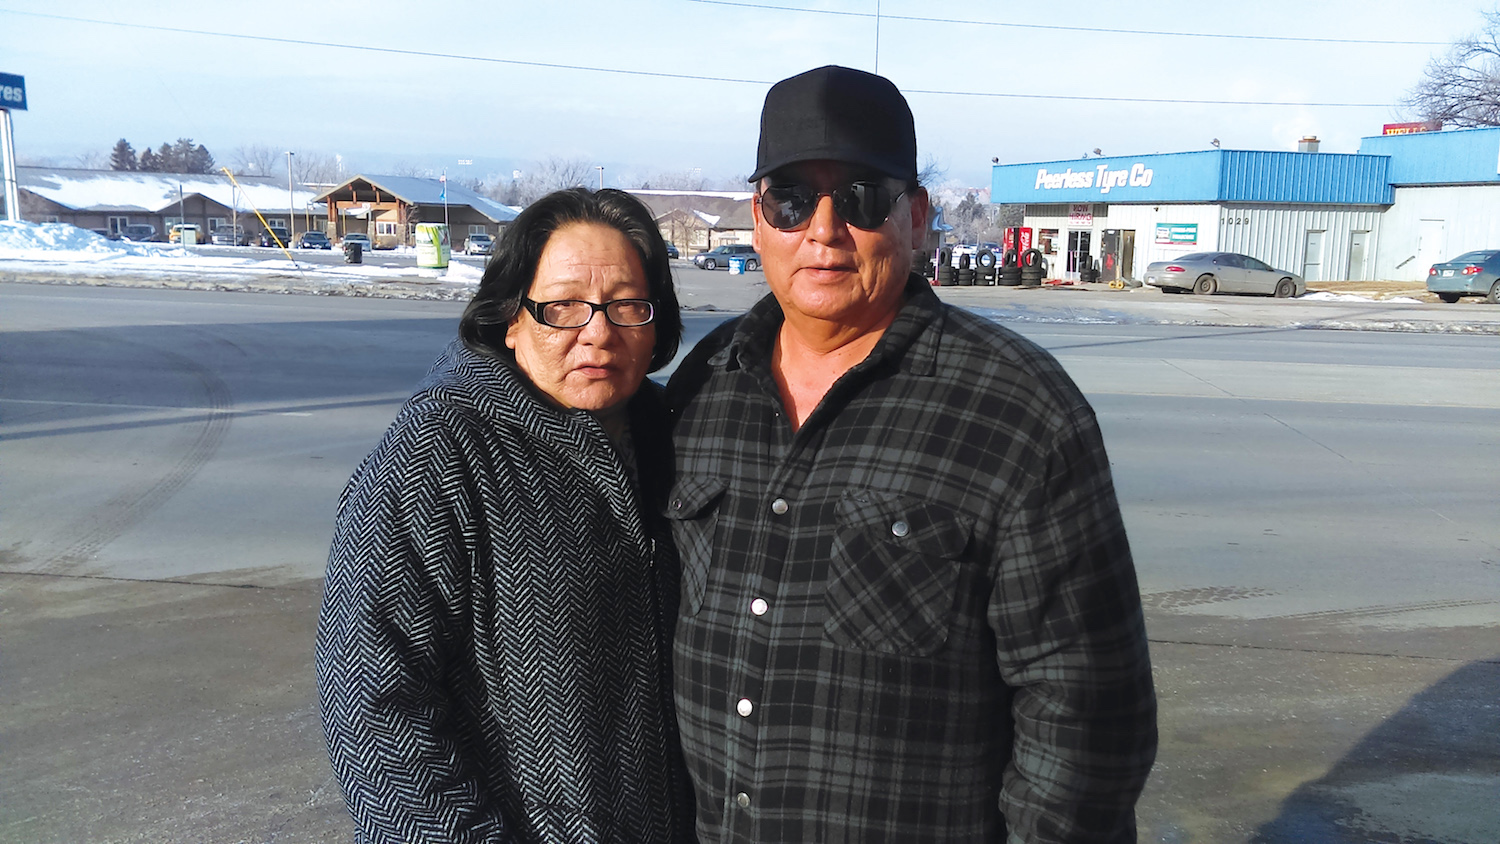 Native Sun News: Lakota family humiliated by Rapid City police